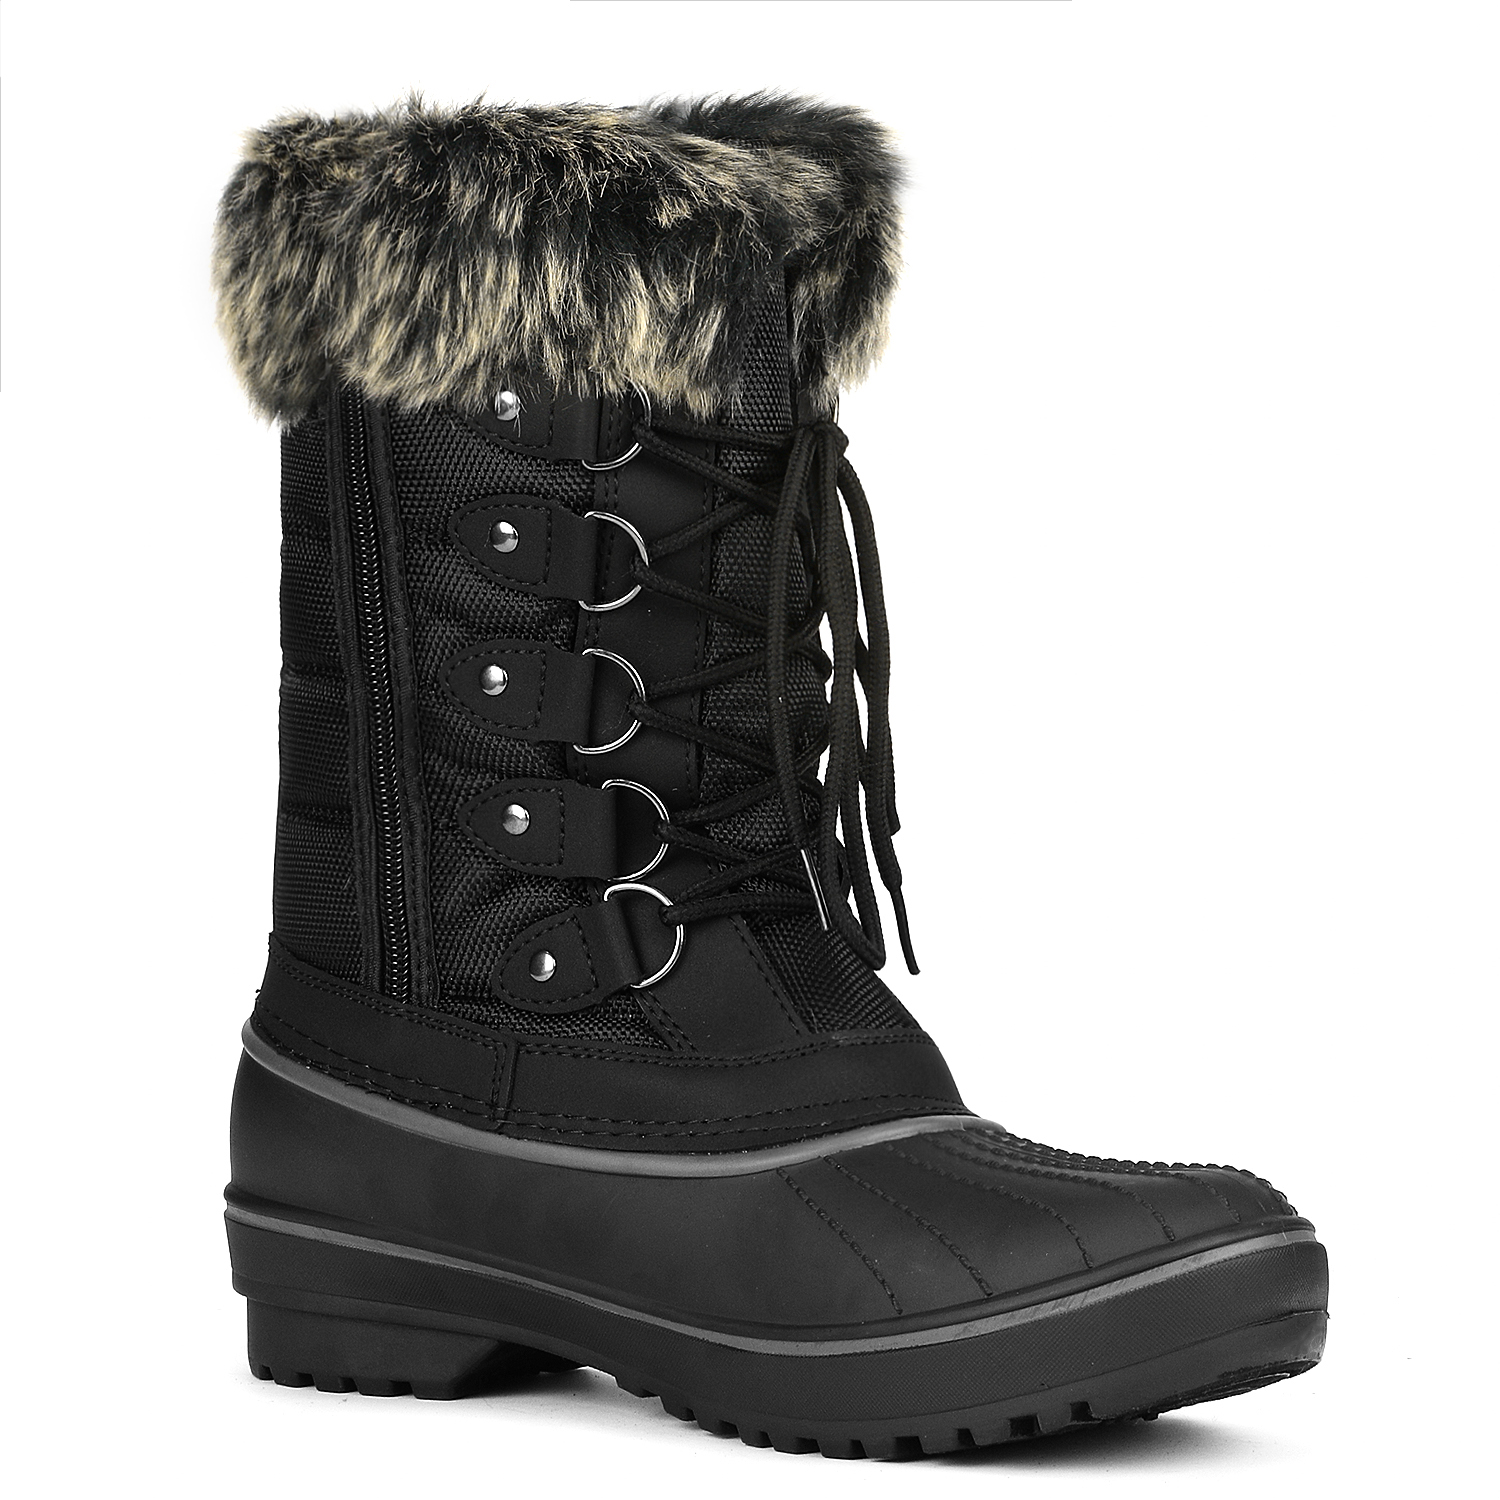 DREAM PAIRS Women Waterproof Faux Fur Mid Calf Lace Up Winter Warm Snow Boots US